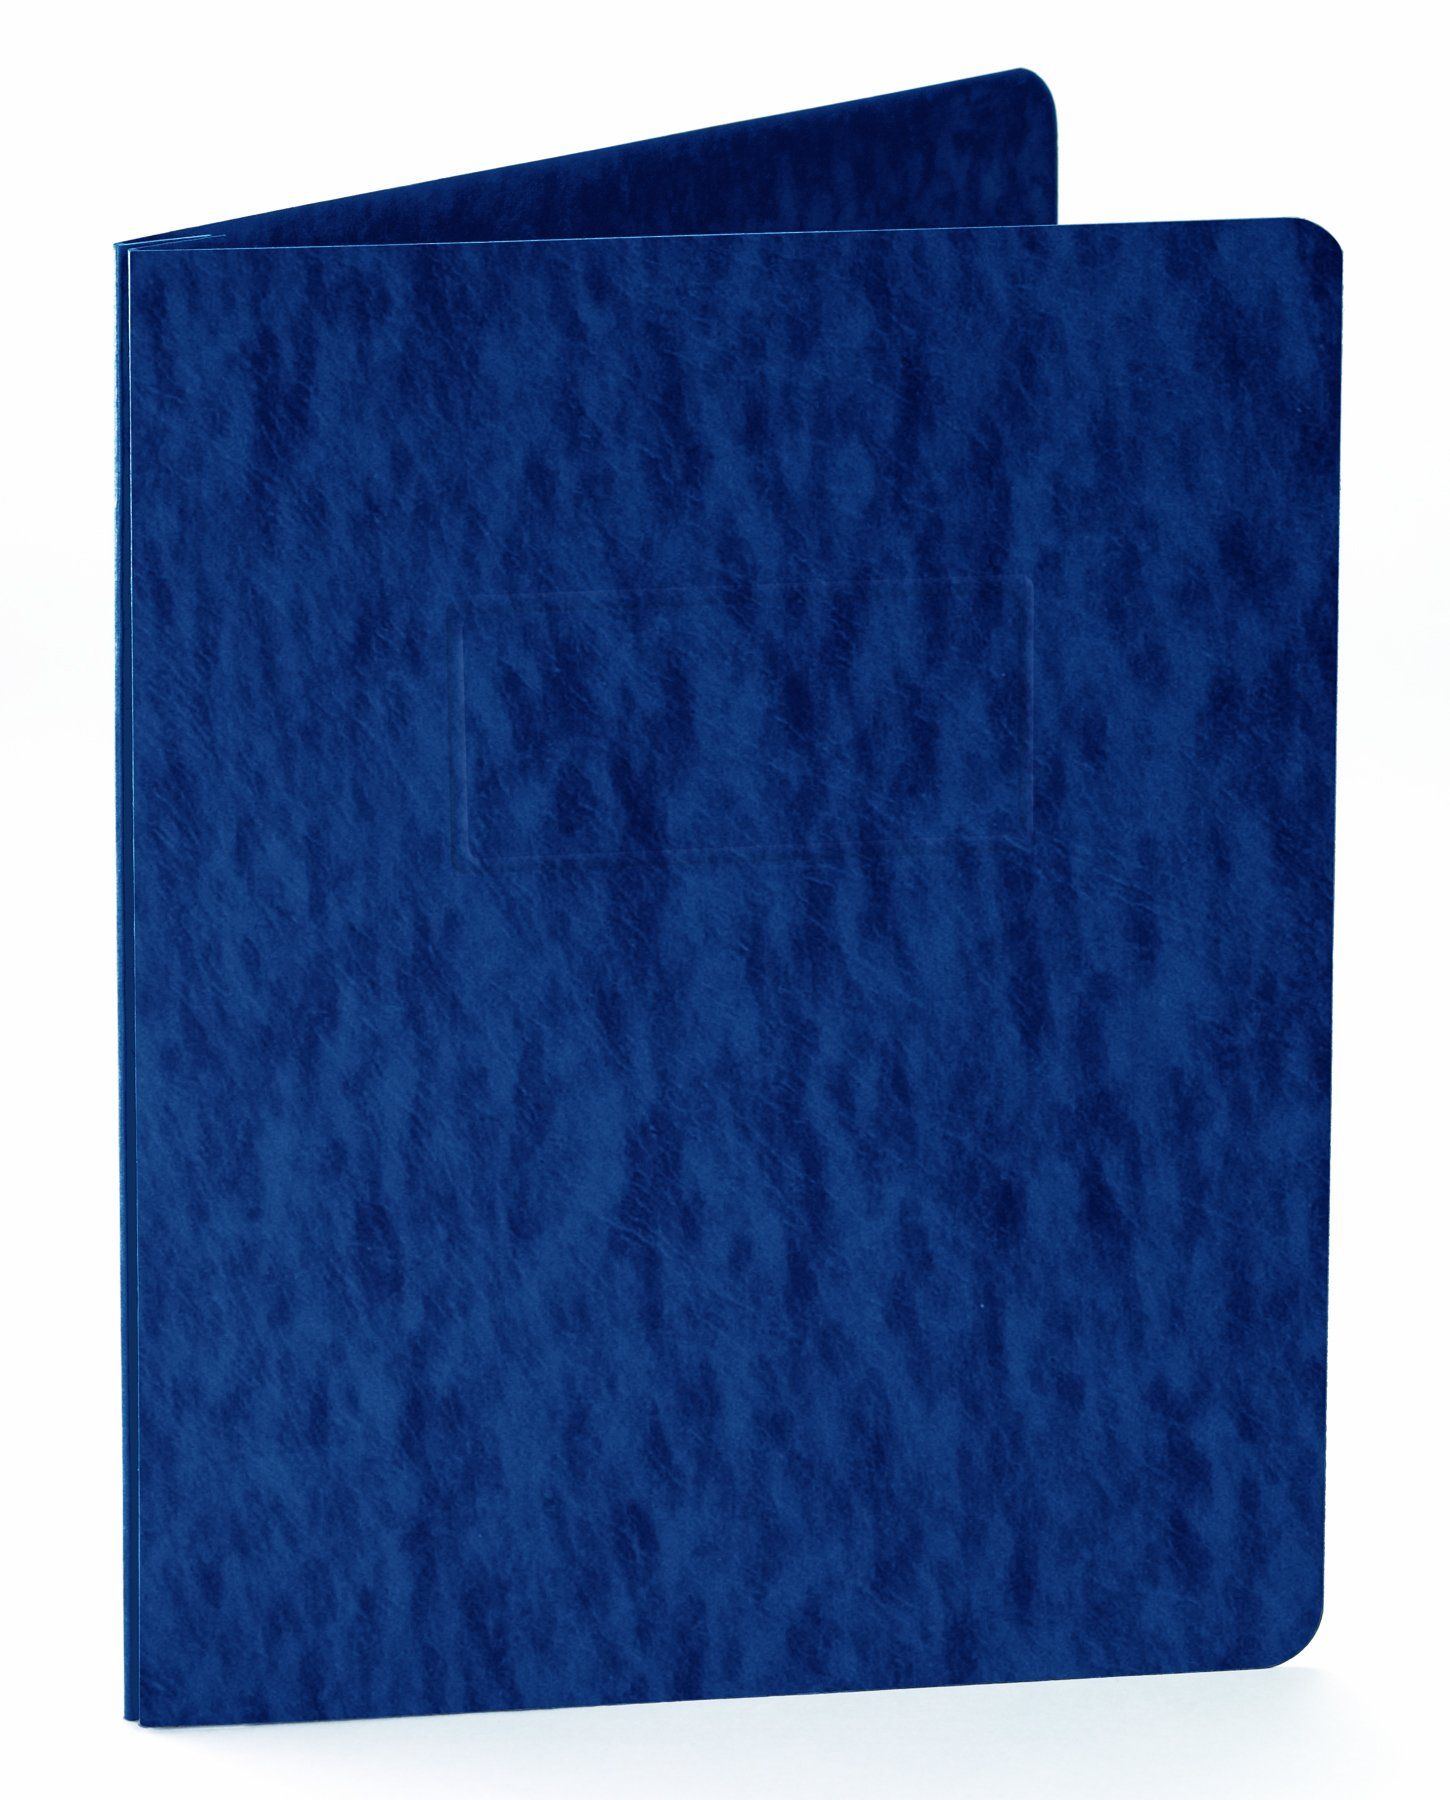 Oxford Pressboard Report Covers With Scored Side Hinge, 5 Pack, Letter, Dark Blue (99402EE)